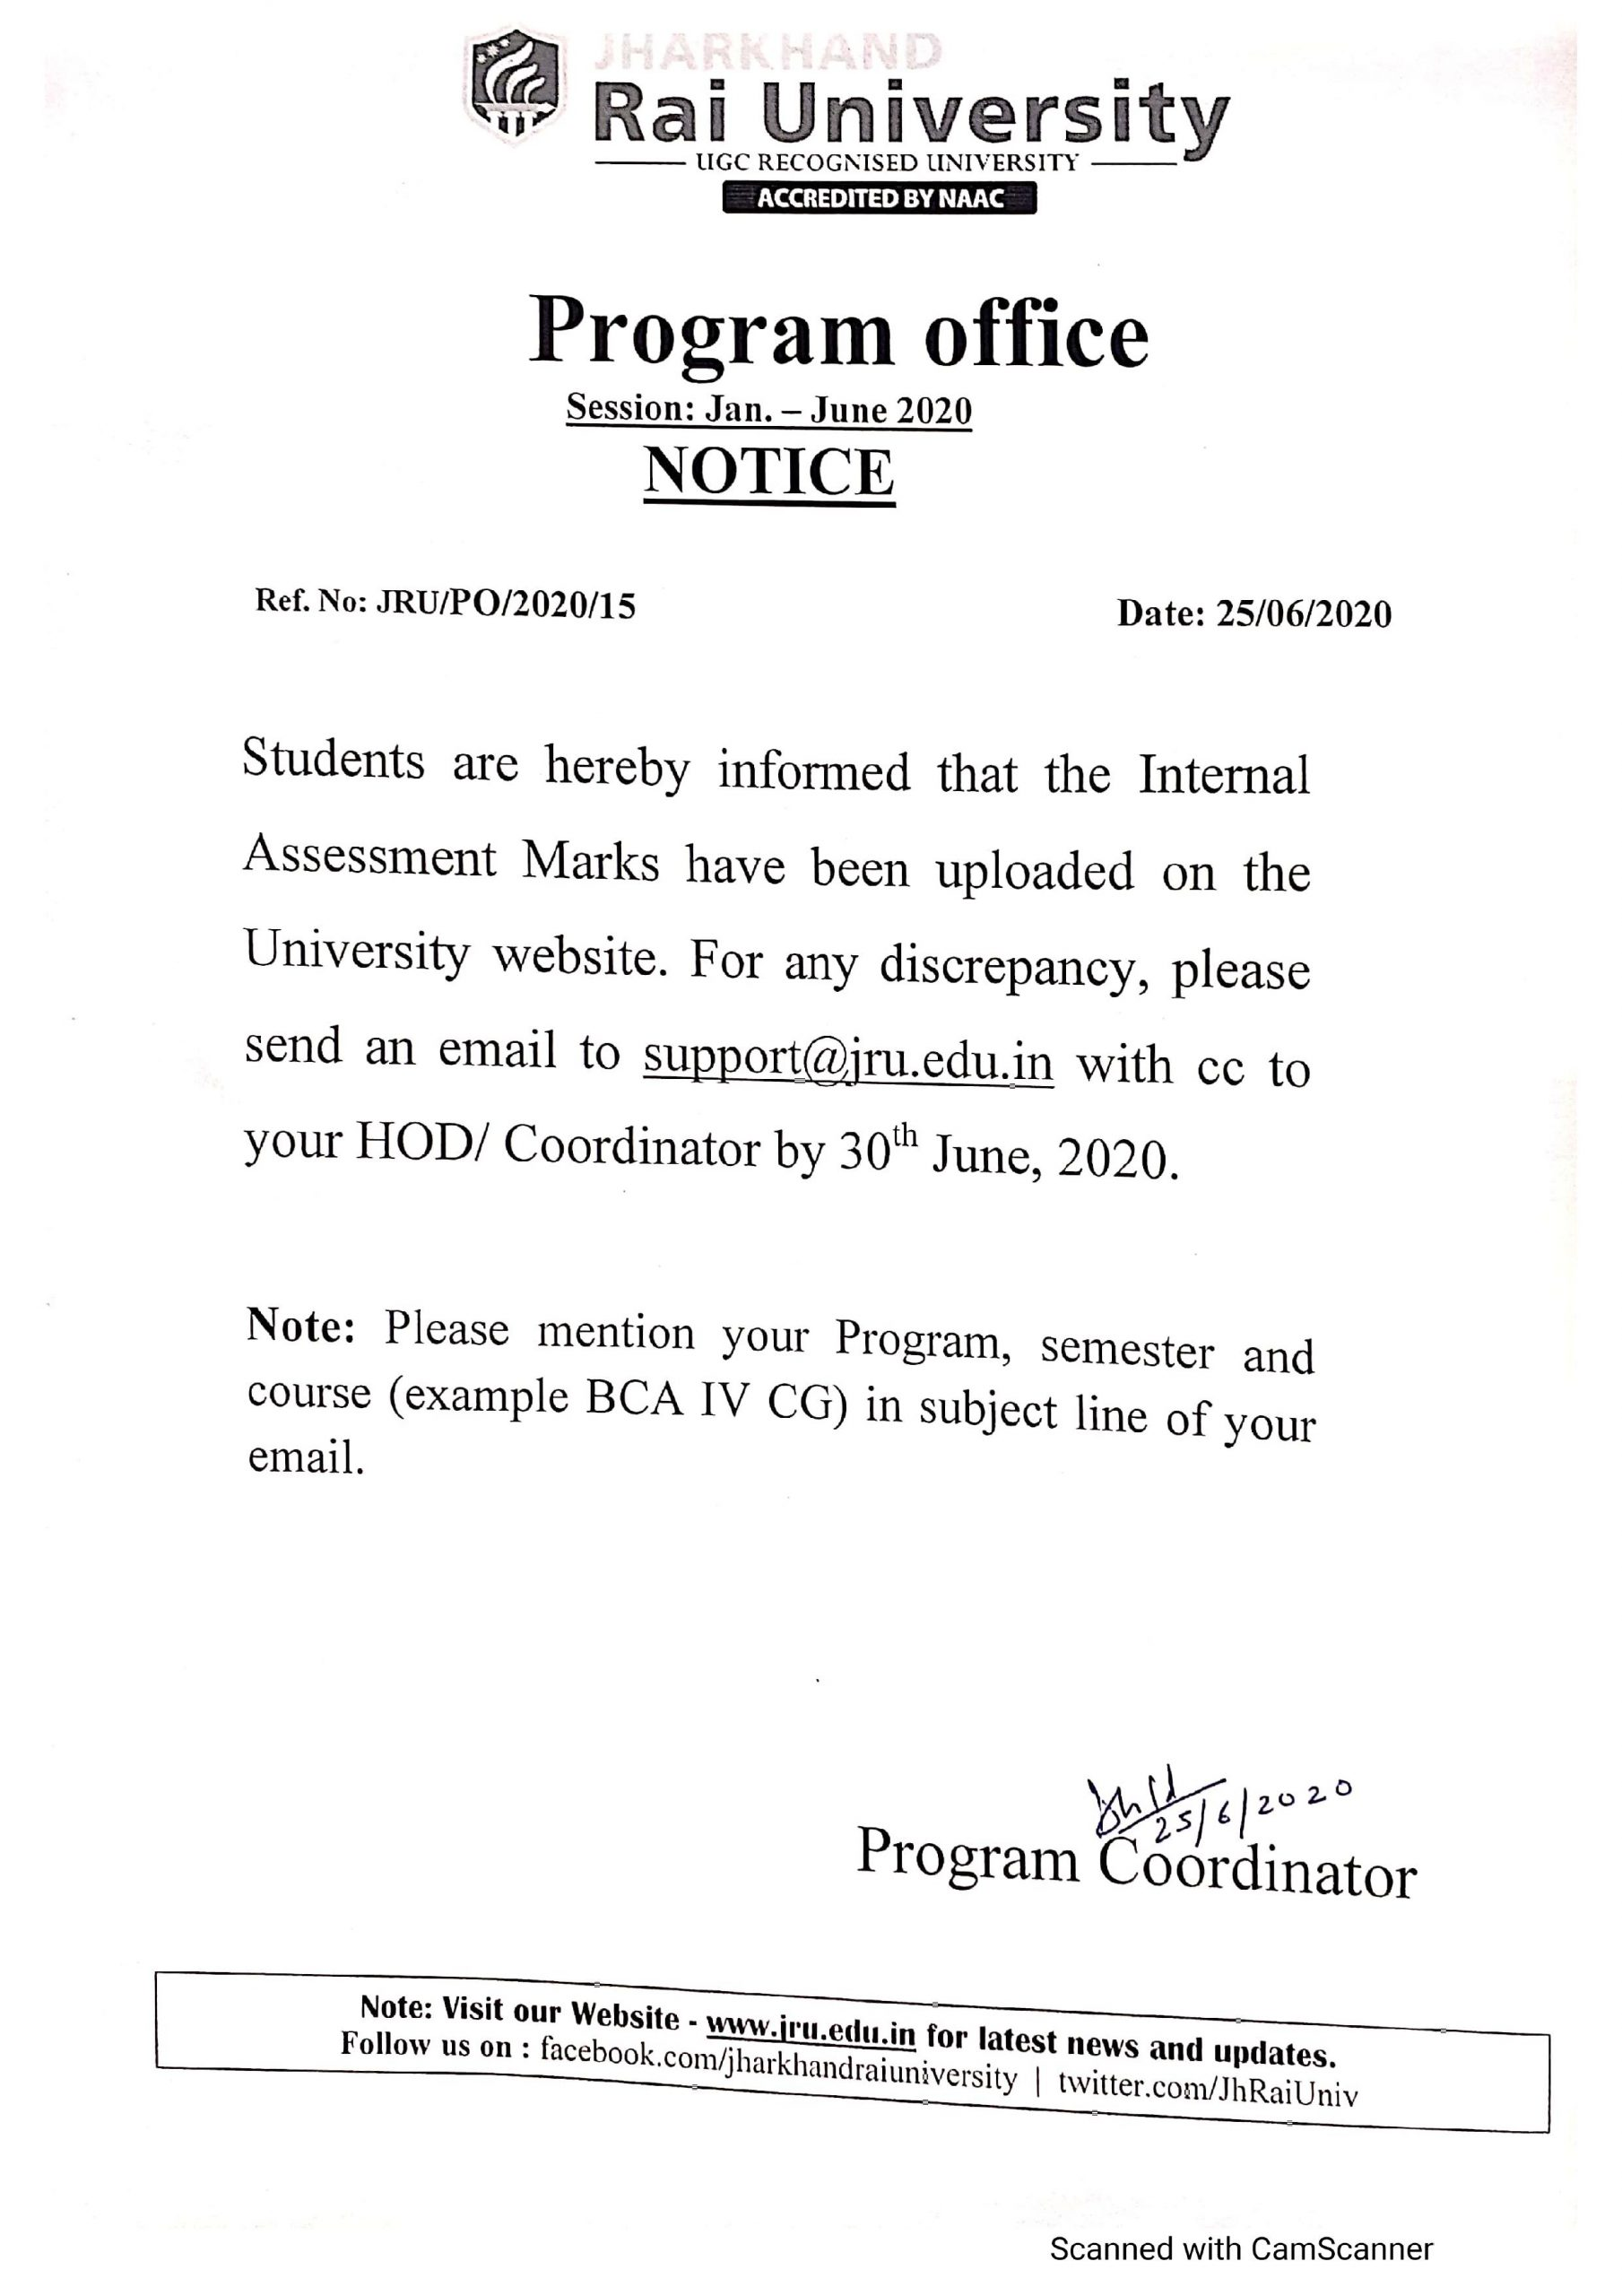 Notice Regarding Internal Assessment Marks